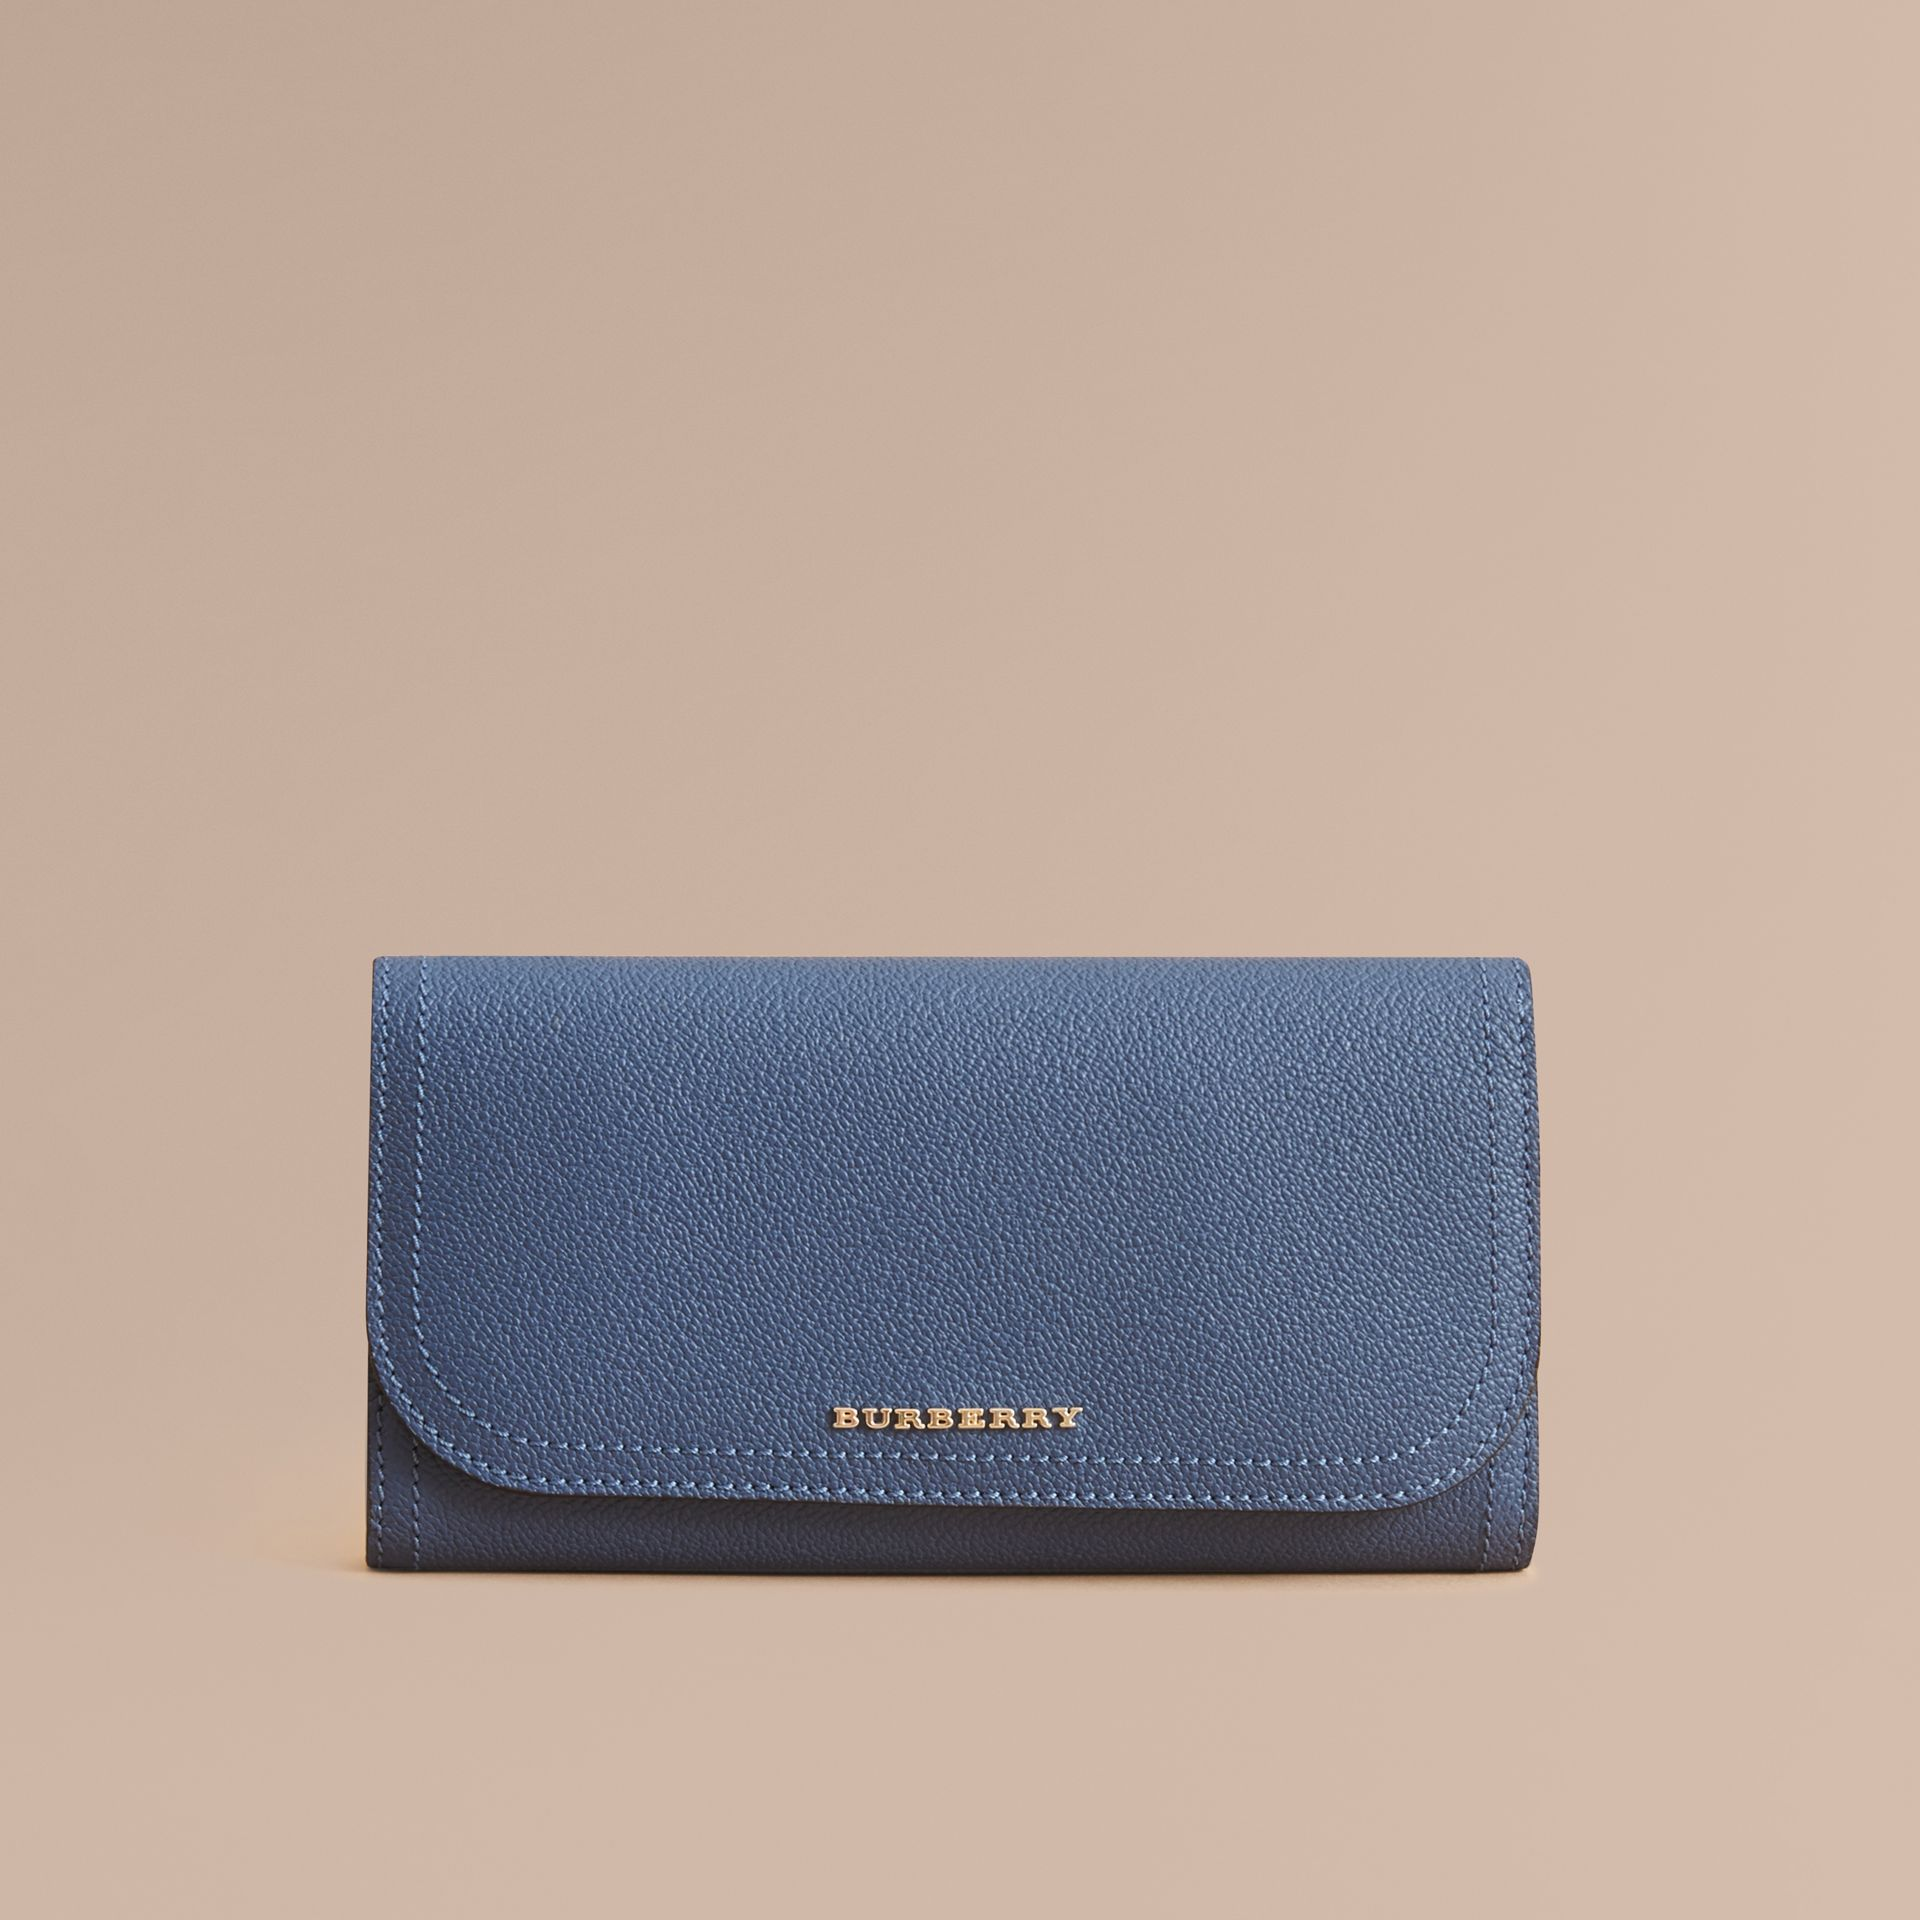 Two-tone Leather Continental Wallet and Coin Case in Steel Blue/multi - Women | Burberry Singapore - gallery image 3